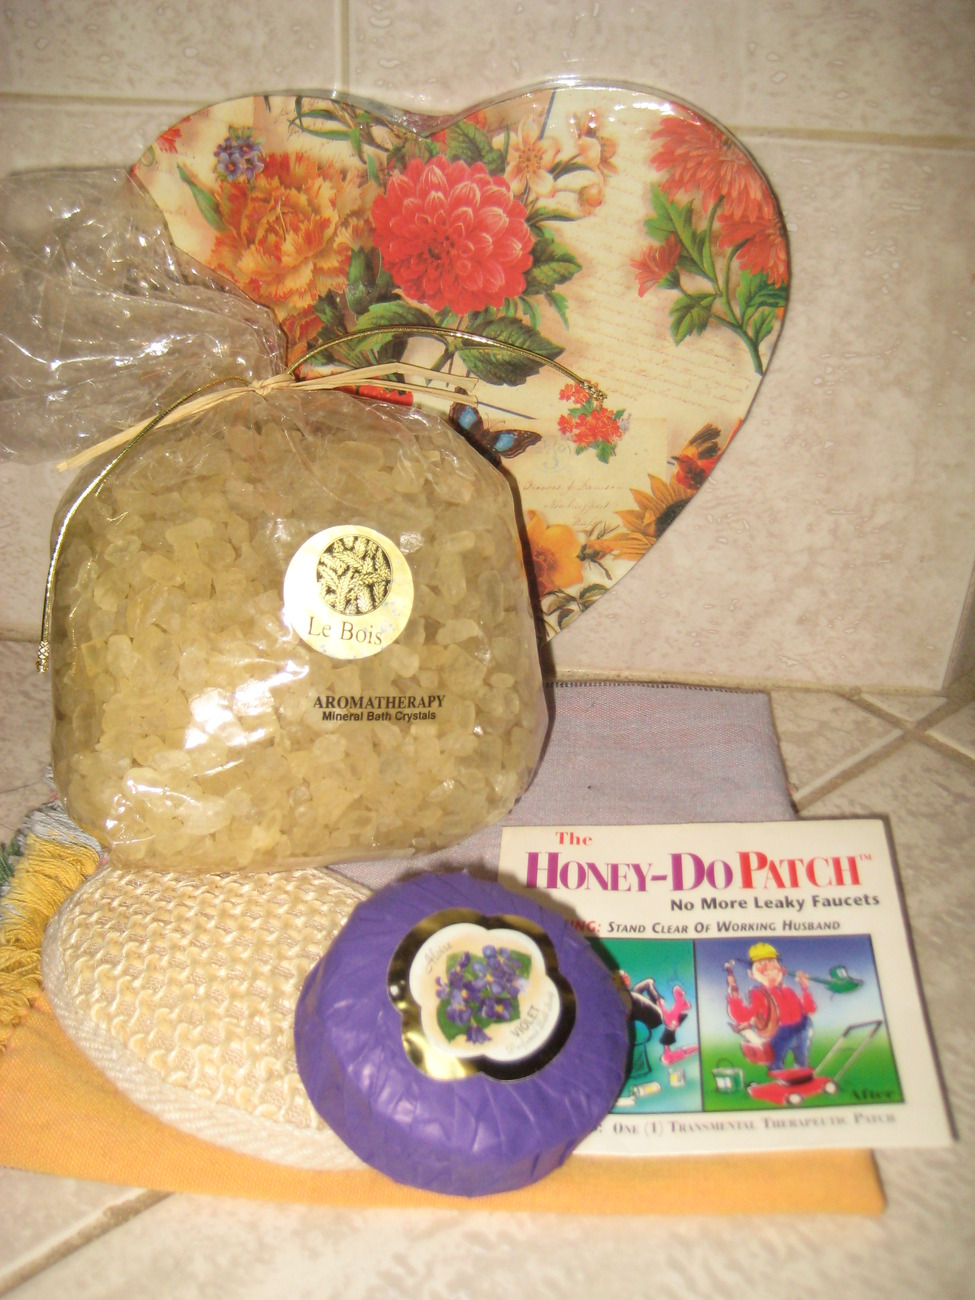 BEAUTIFUL SPA GIFT PACKAGE IN HEART SHAPED BOX - GREAT GIFT!